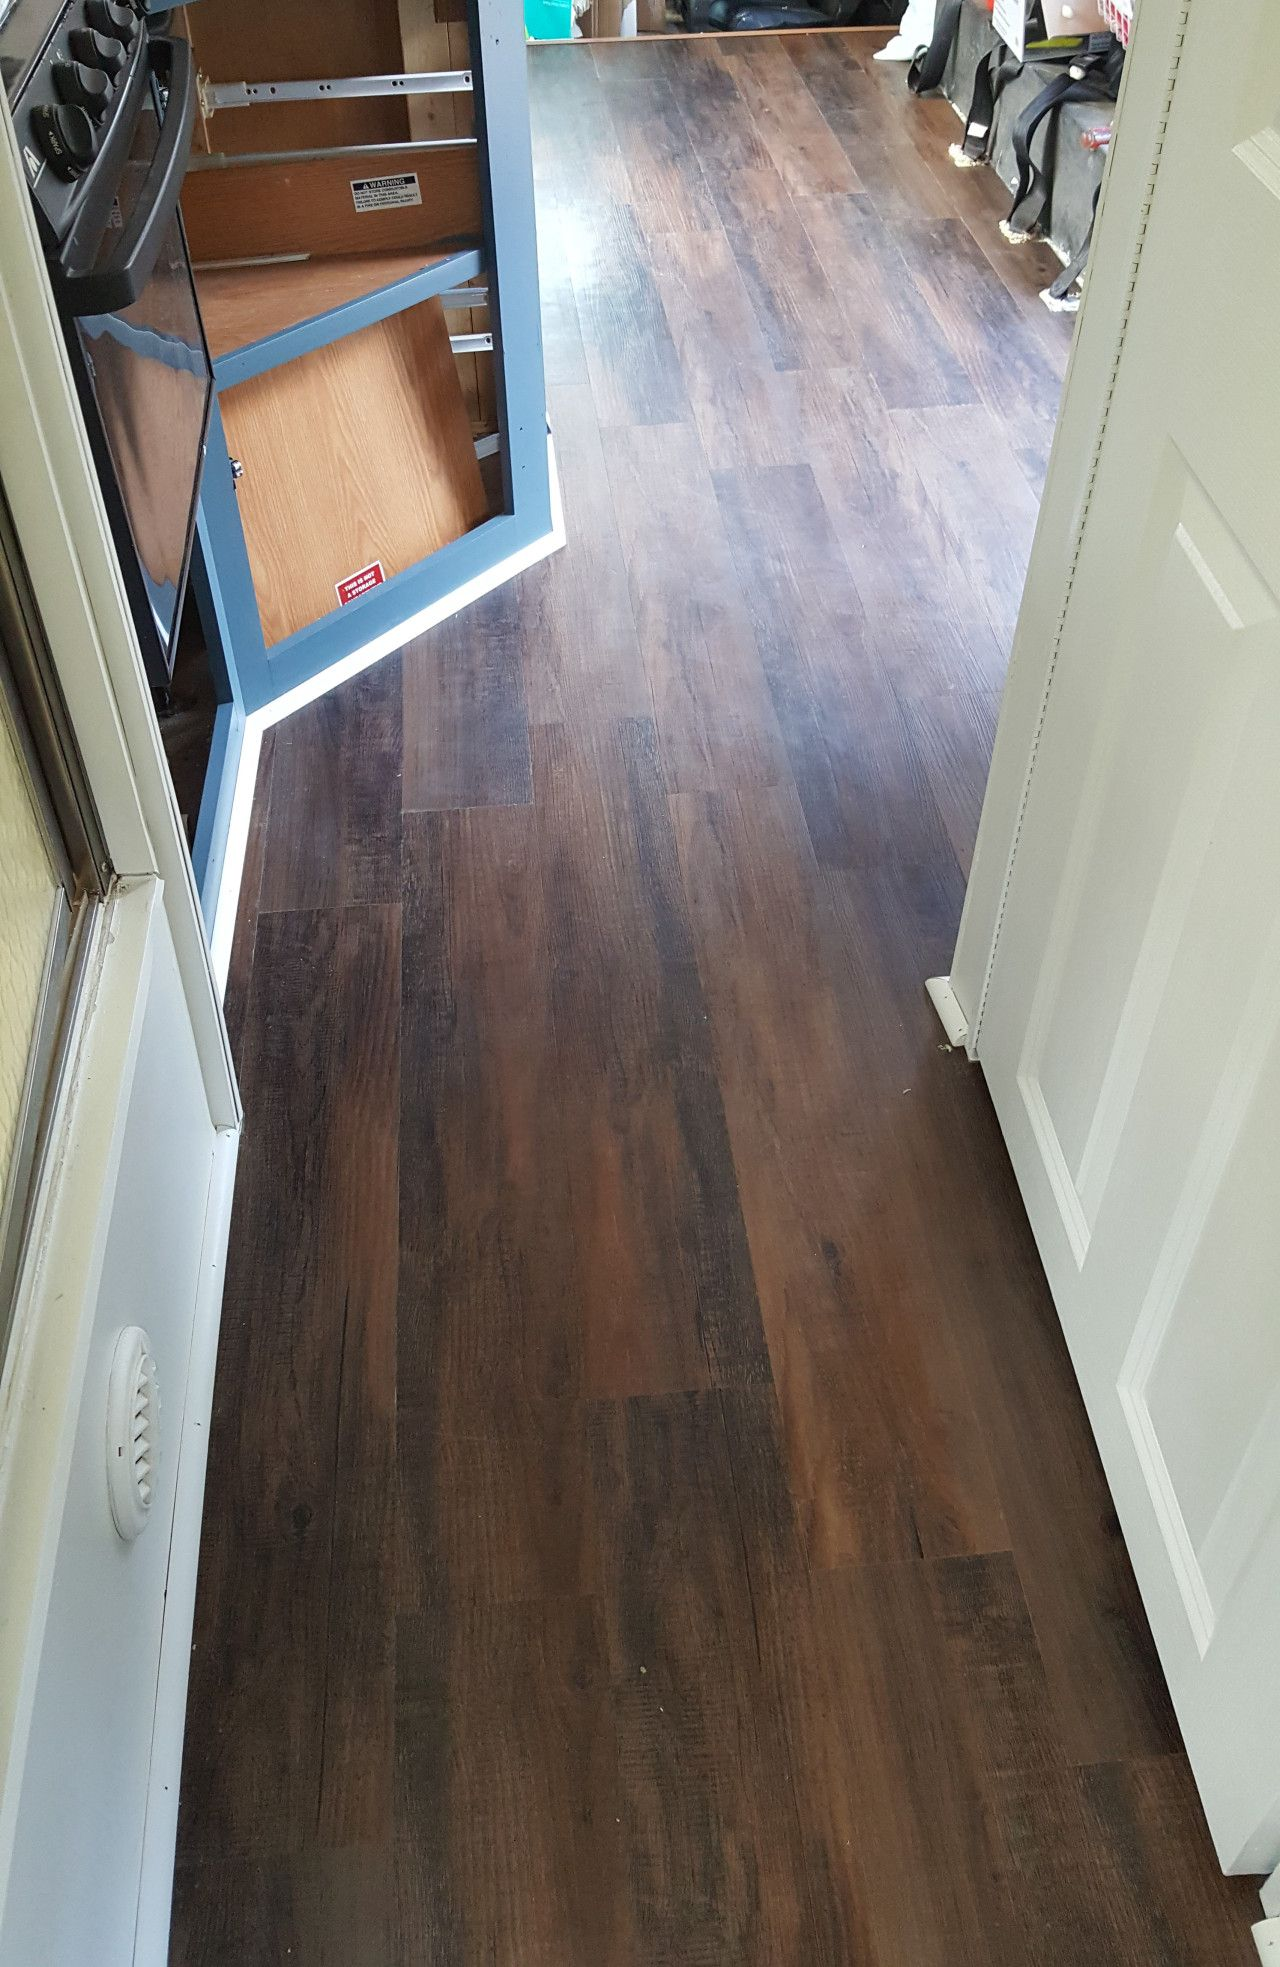 Lowes Peel And Stick Vinyl Plank Flooring Installation For Rv